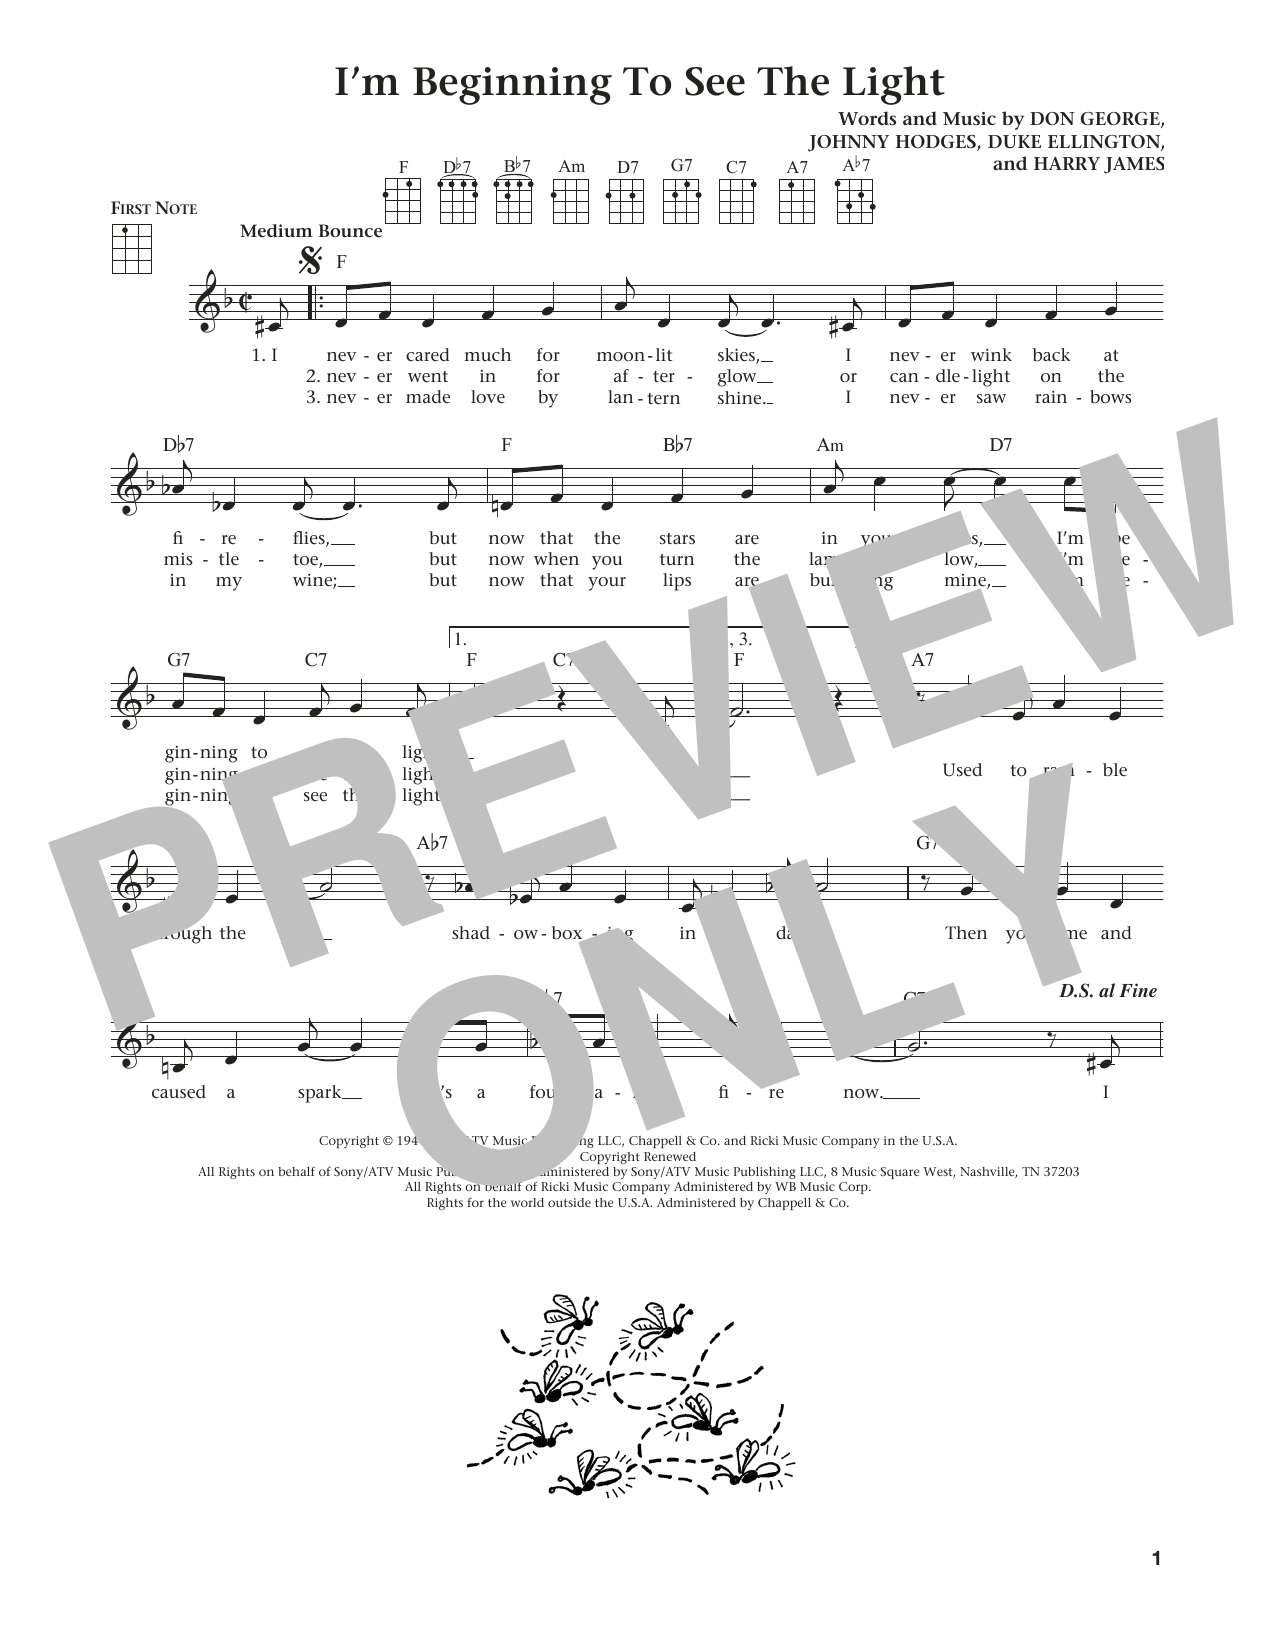 I'm Beginning To See The Light (from The Daily Ukulele) (arr. Liz and Jim Beloff) (Ukulele)